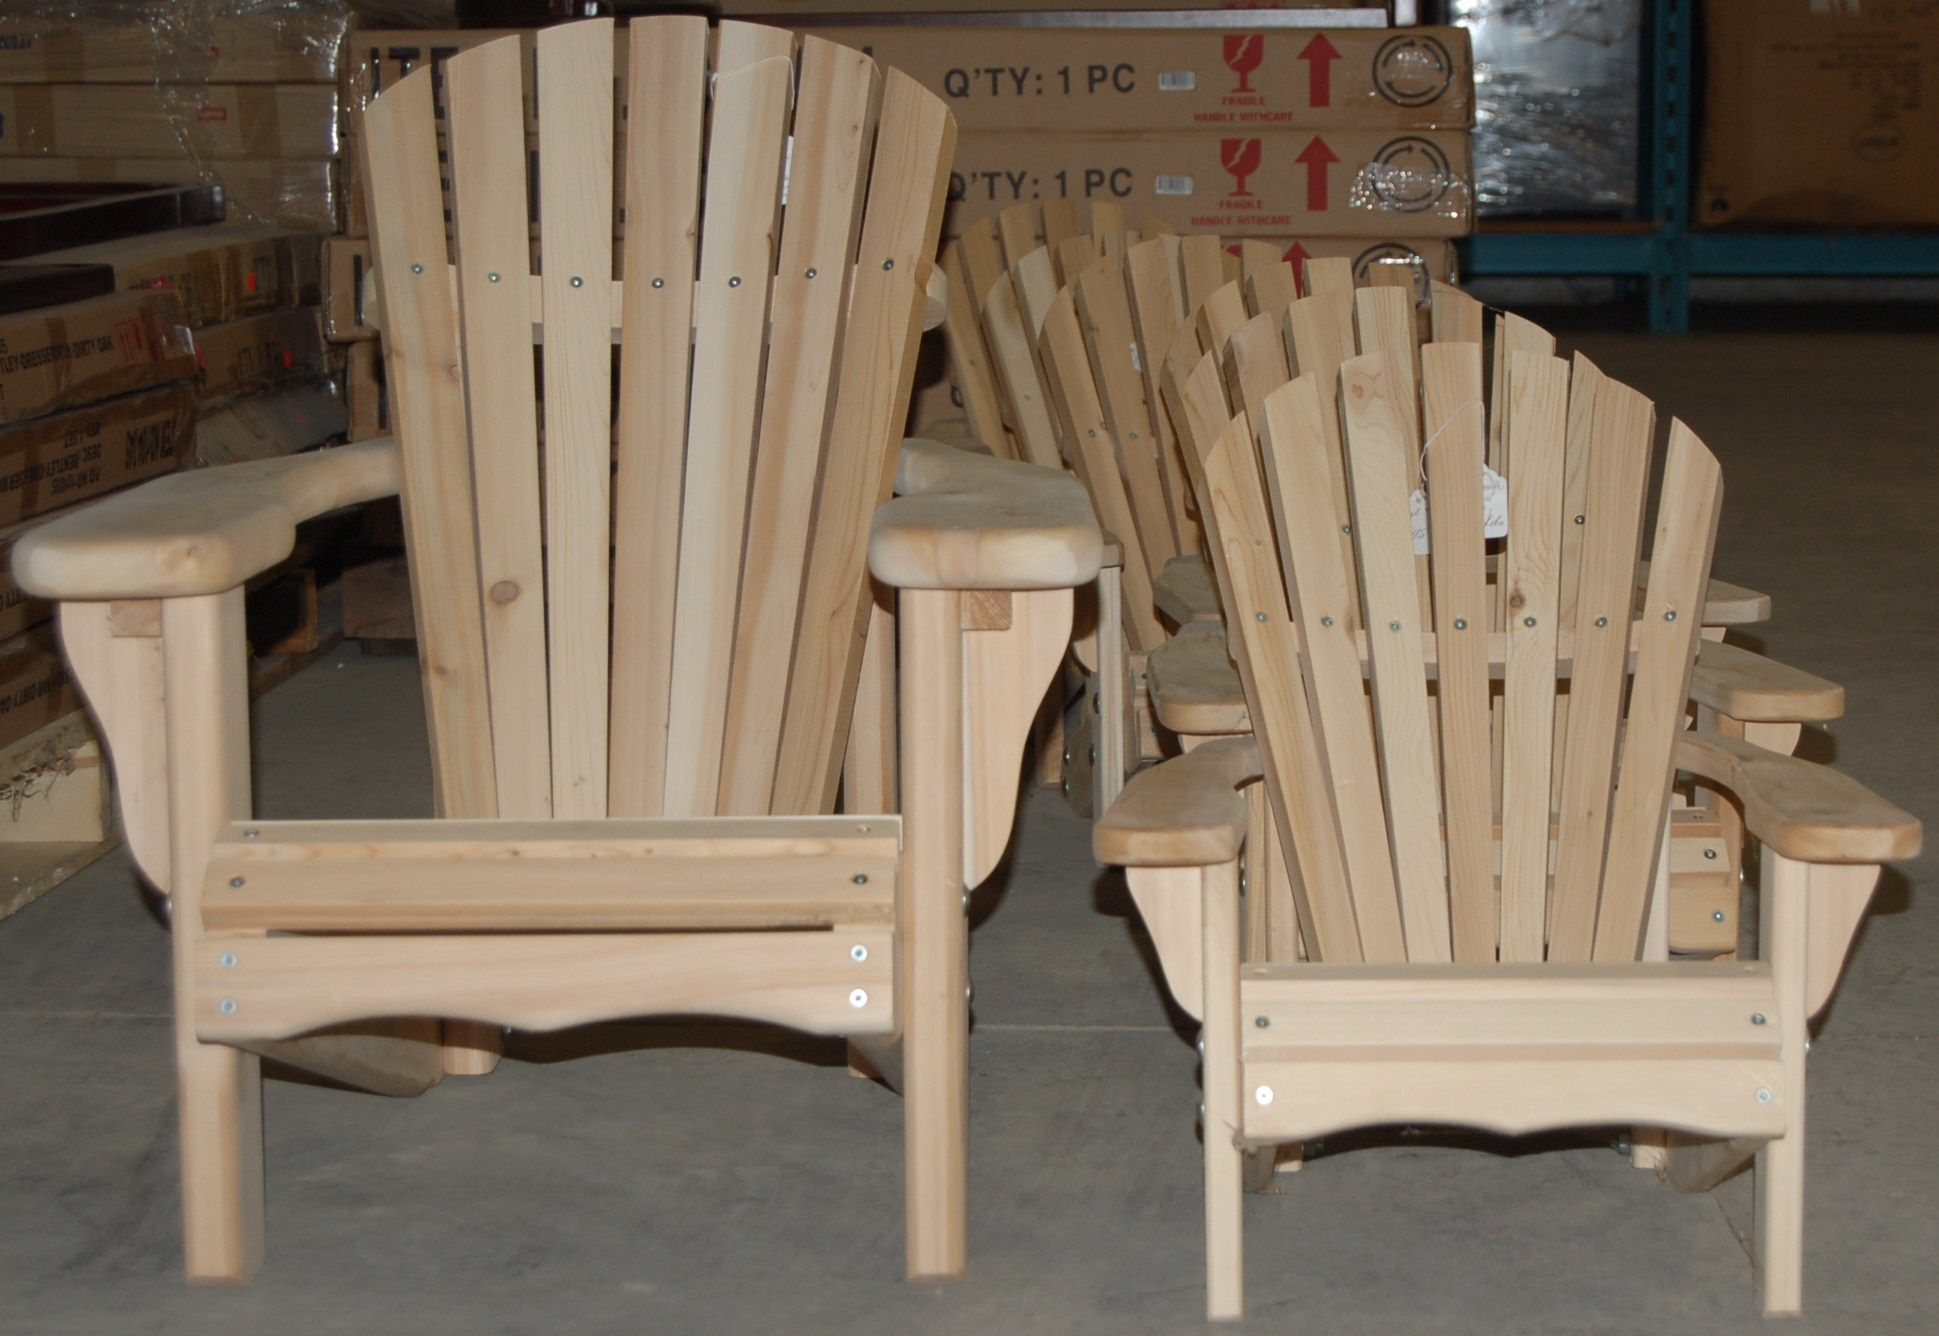 Muskoka Chairs Solid Ceder Meaford Factory Outlet Muskoka Chair Home Decor Outdoor Chairs - Factory Clearance Garden Furniture